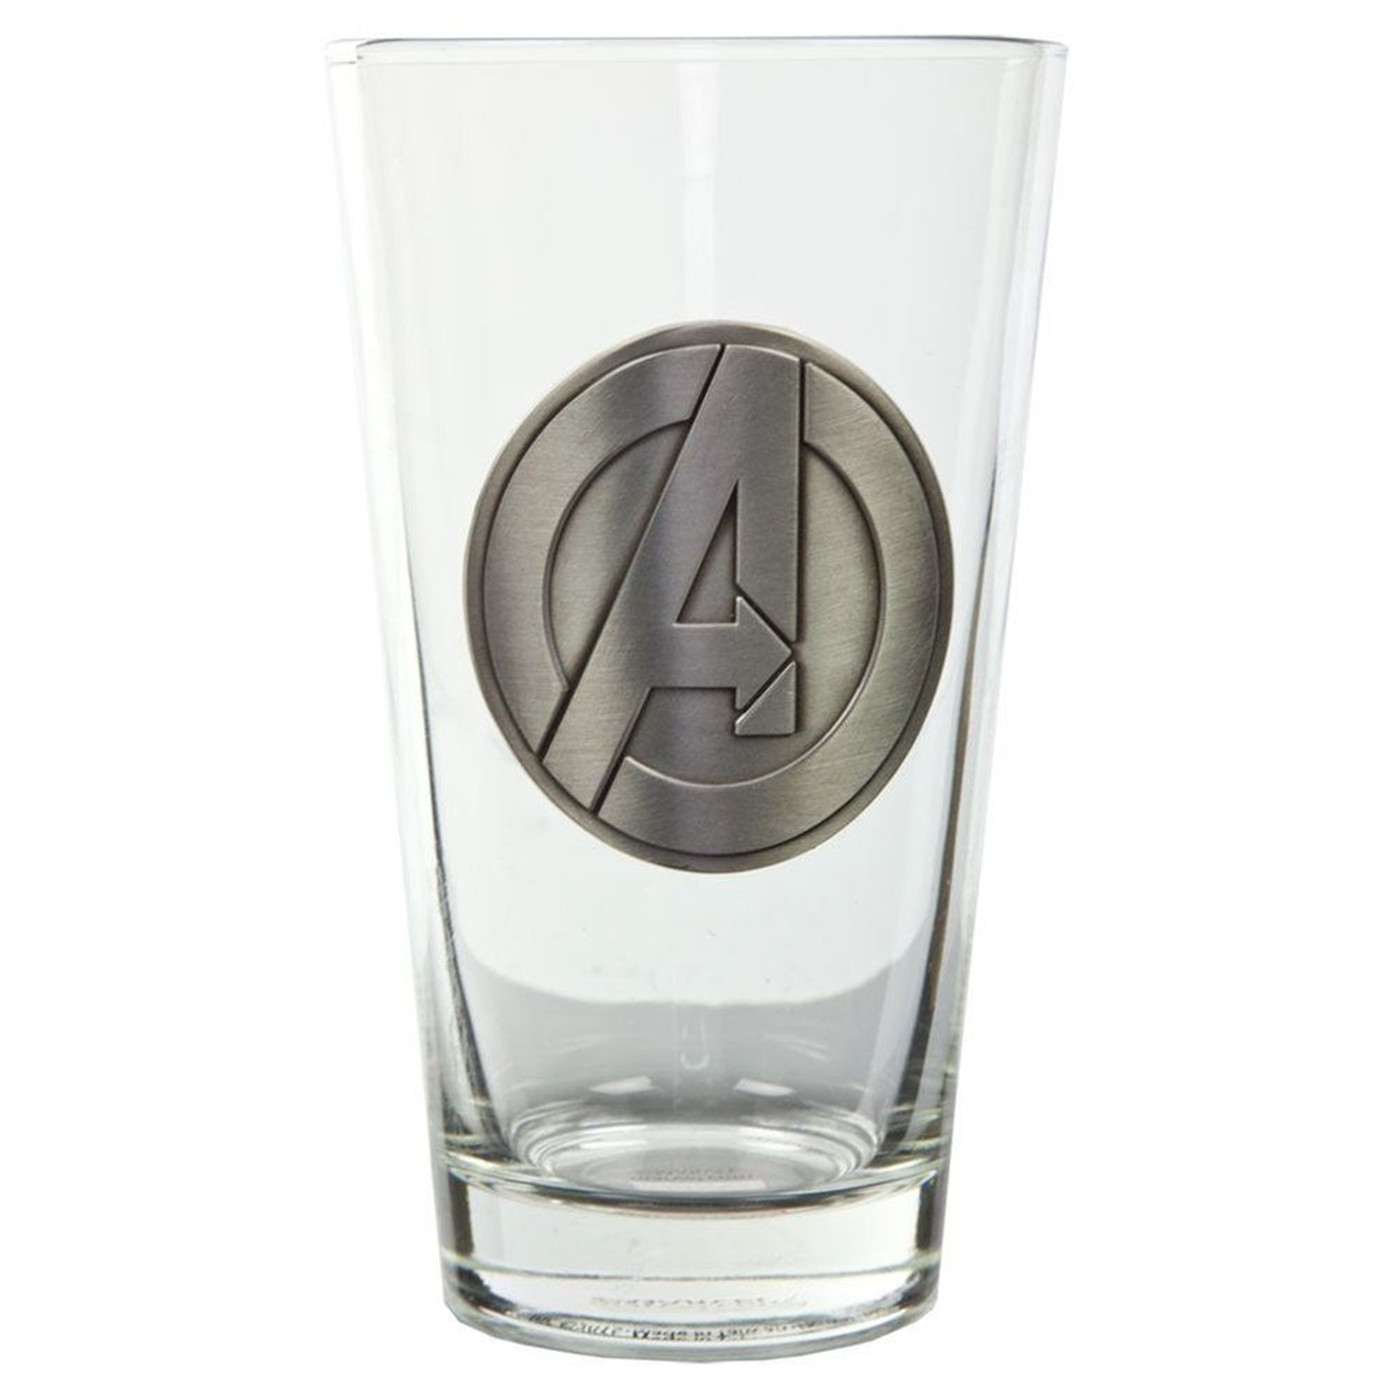 Avengers A Symbol Clear Pint Glass